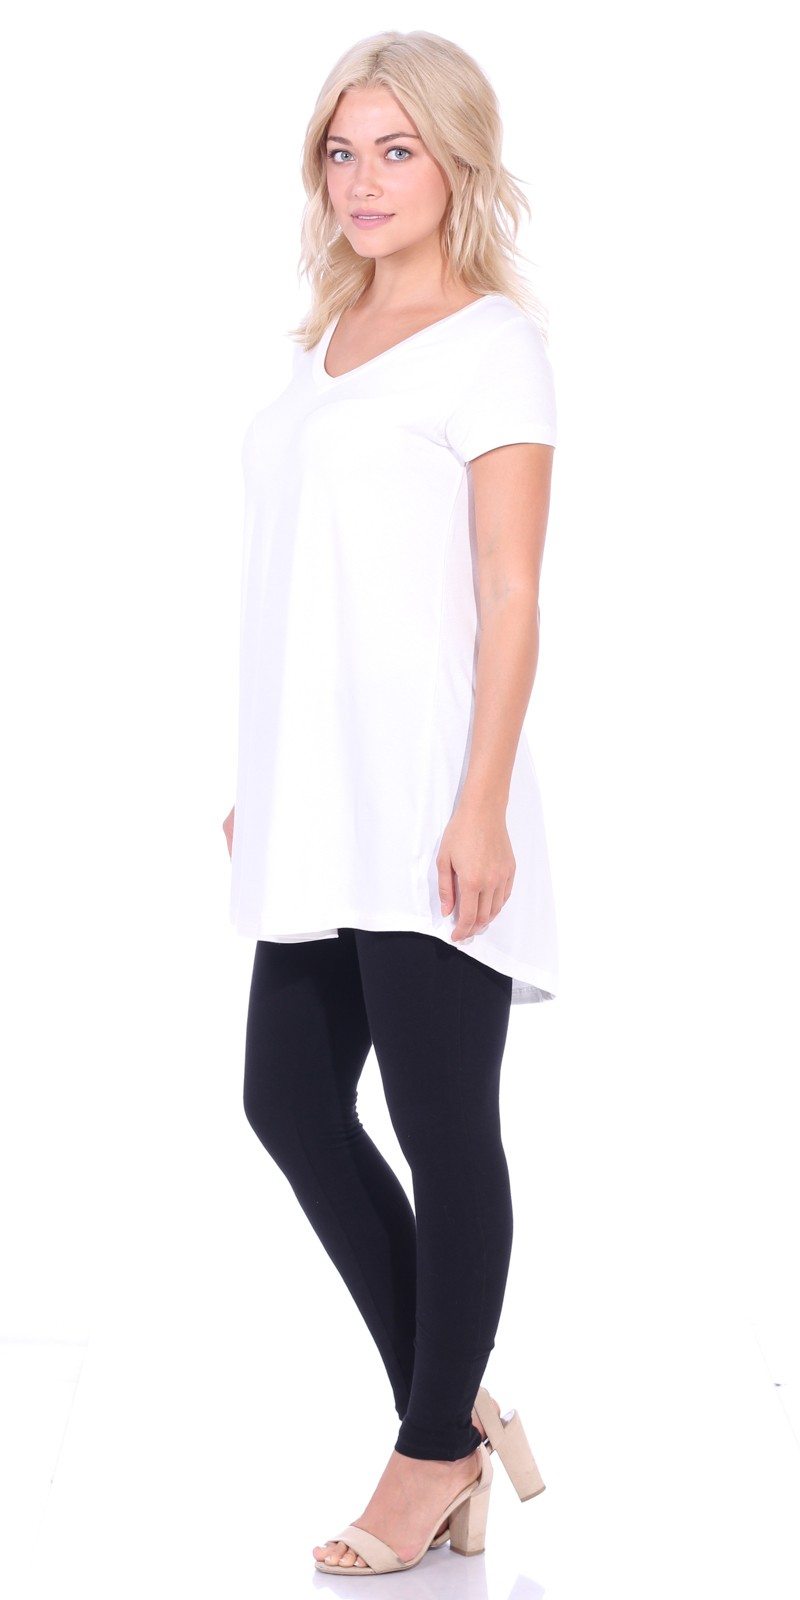 fe6f61a0f768c Short Sleeve Long Tops To Wear With Leggings